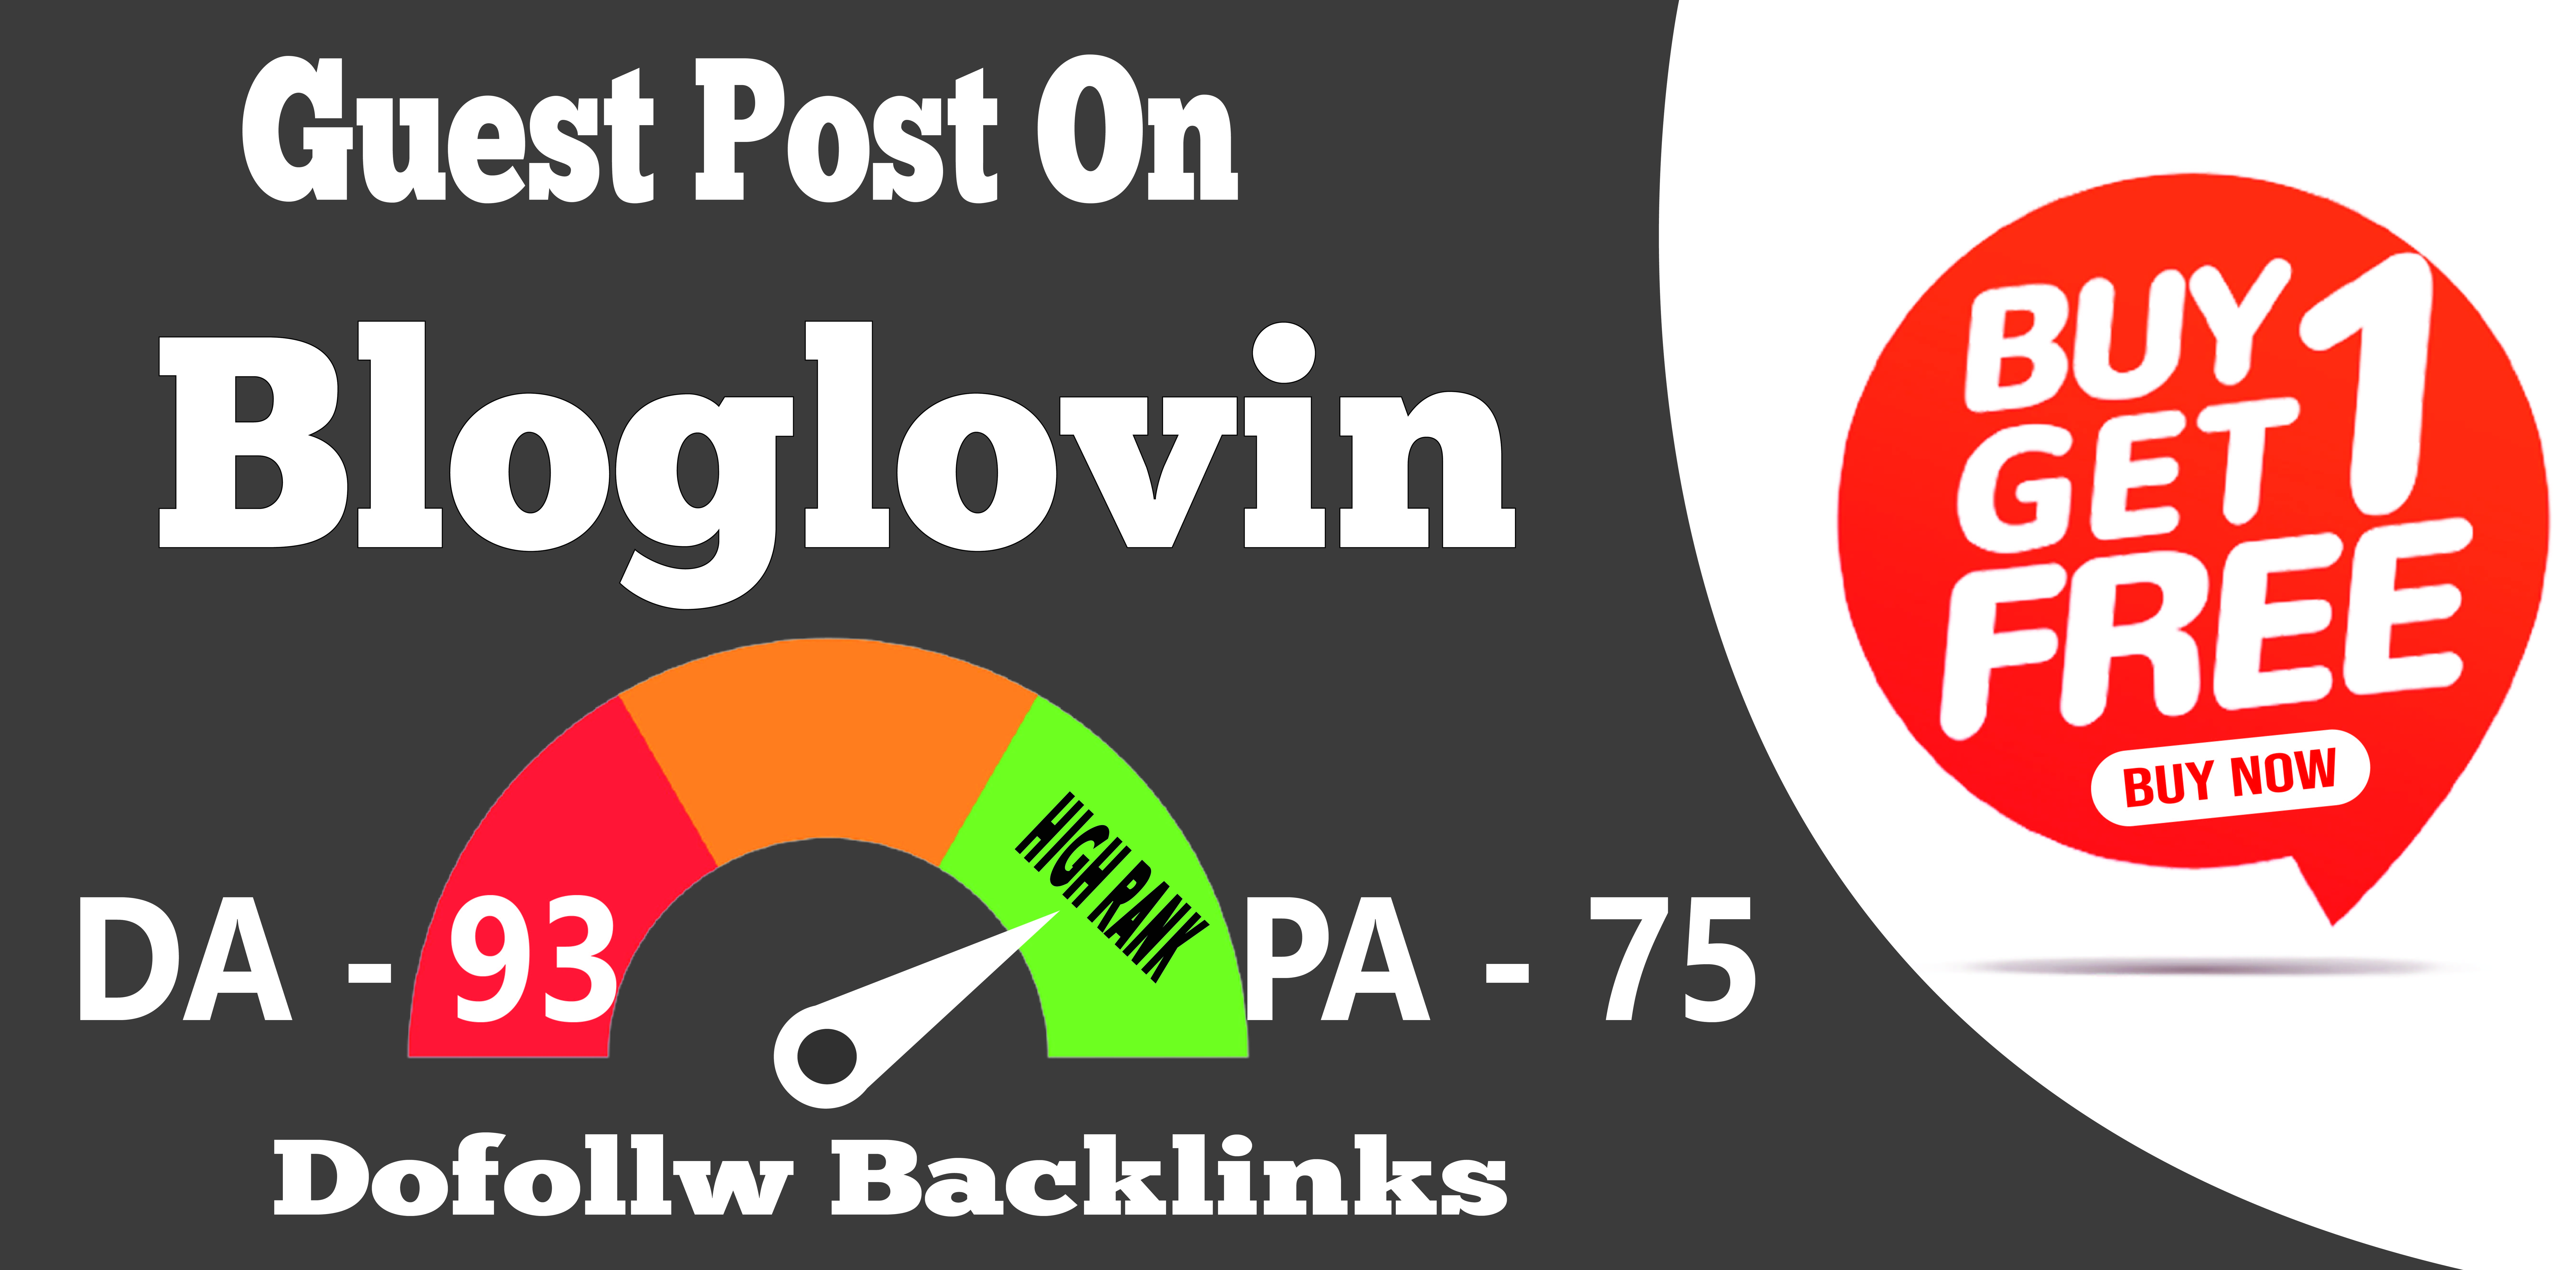 Publish Guest Post On Bloglovin with Buy One Get 1 Free - Skyrocket Service 2021